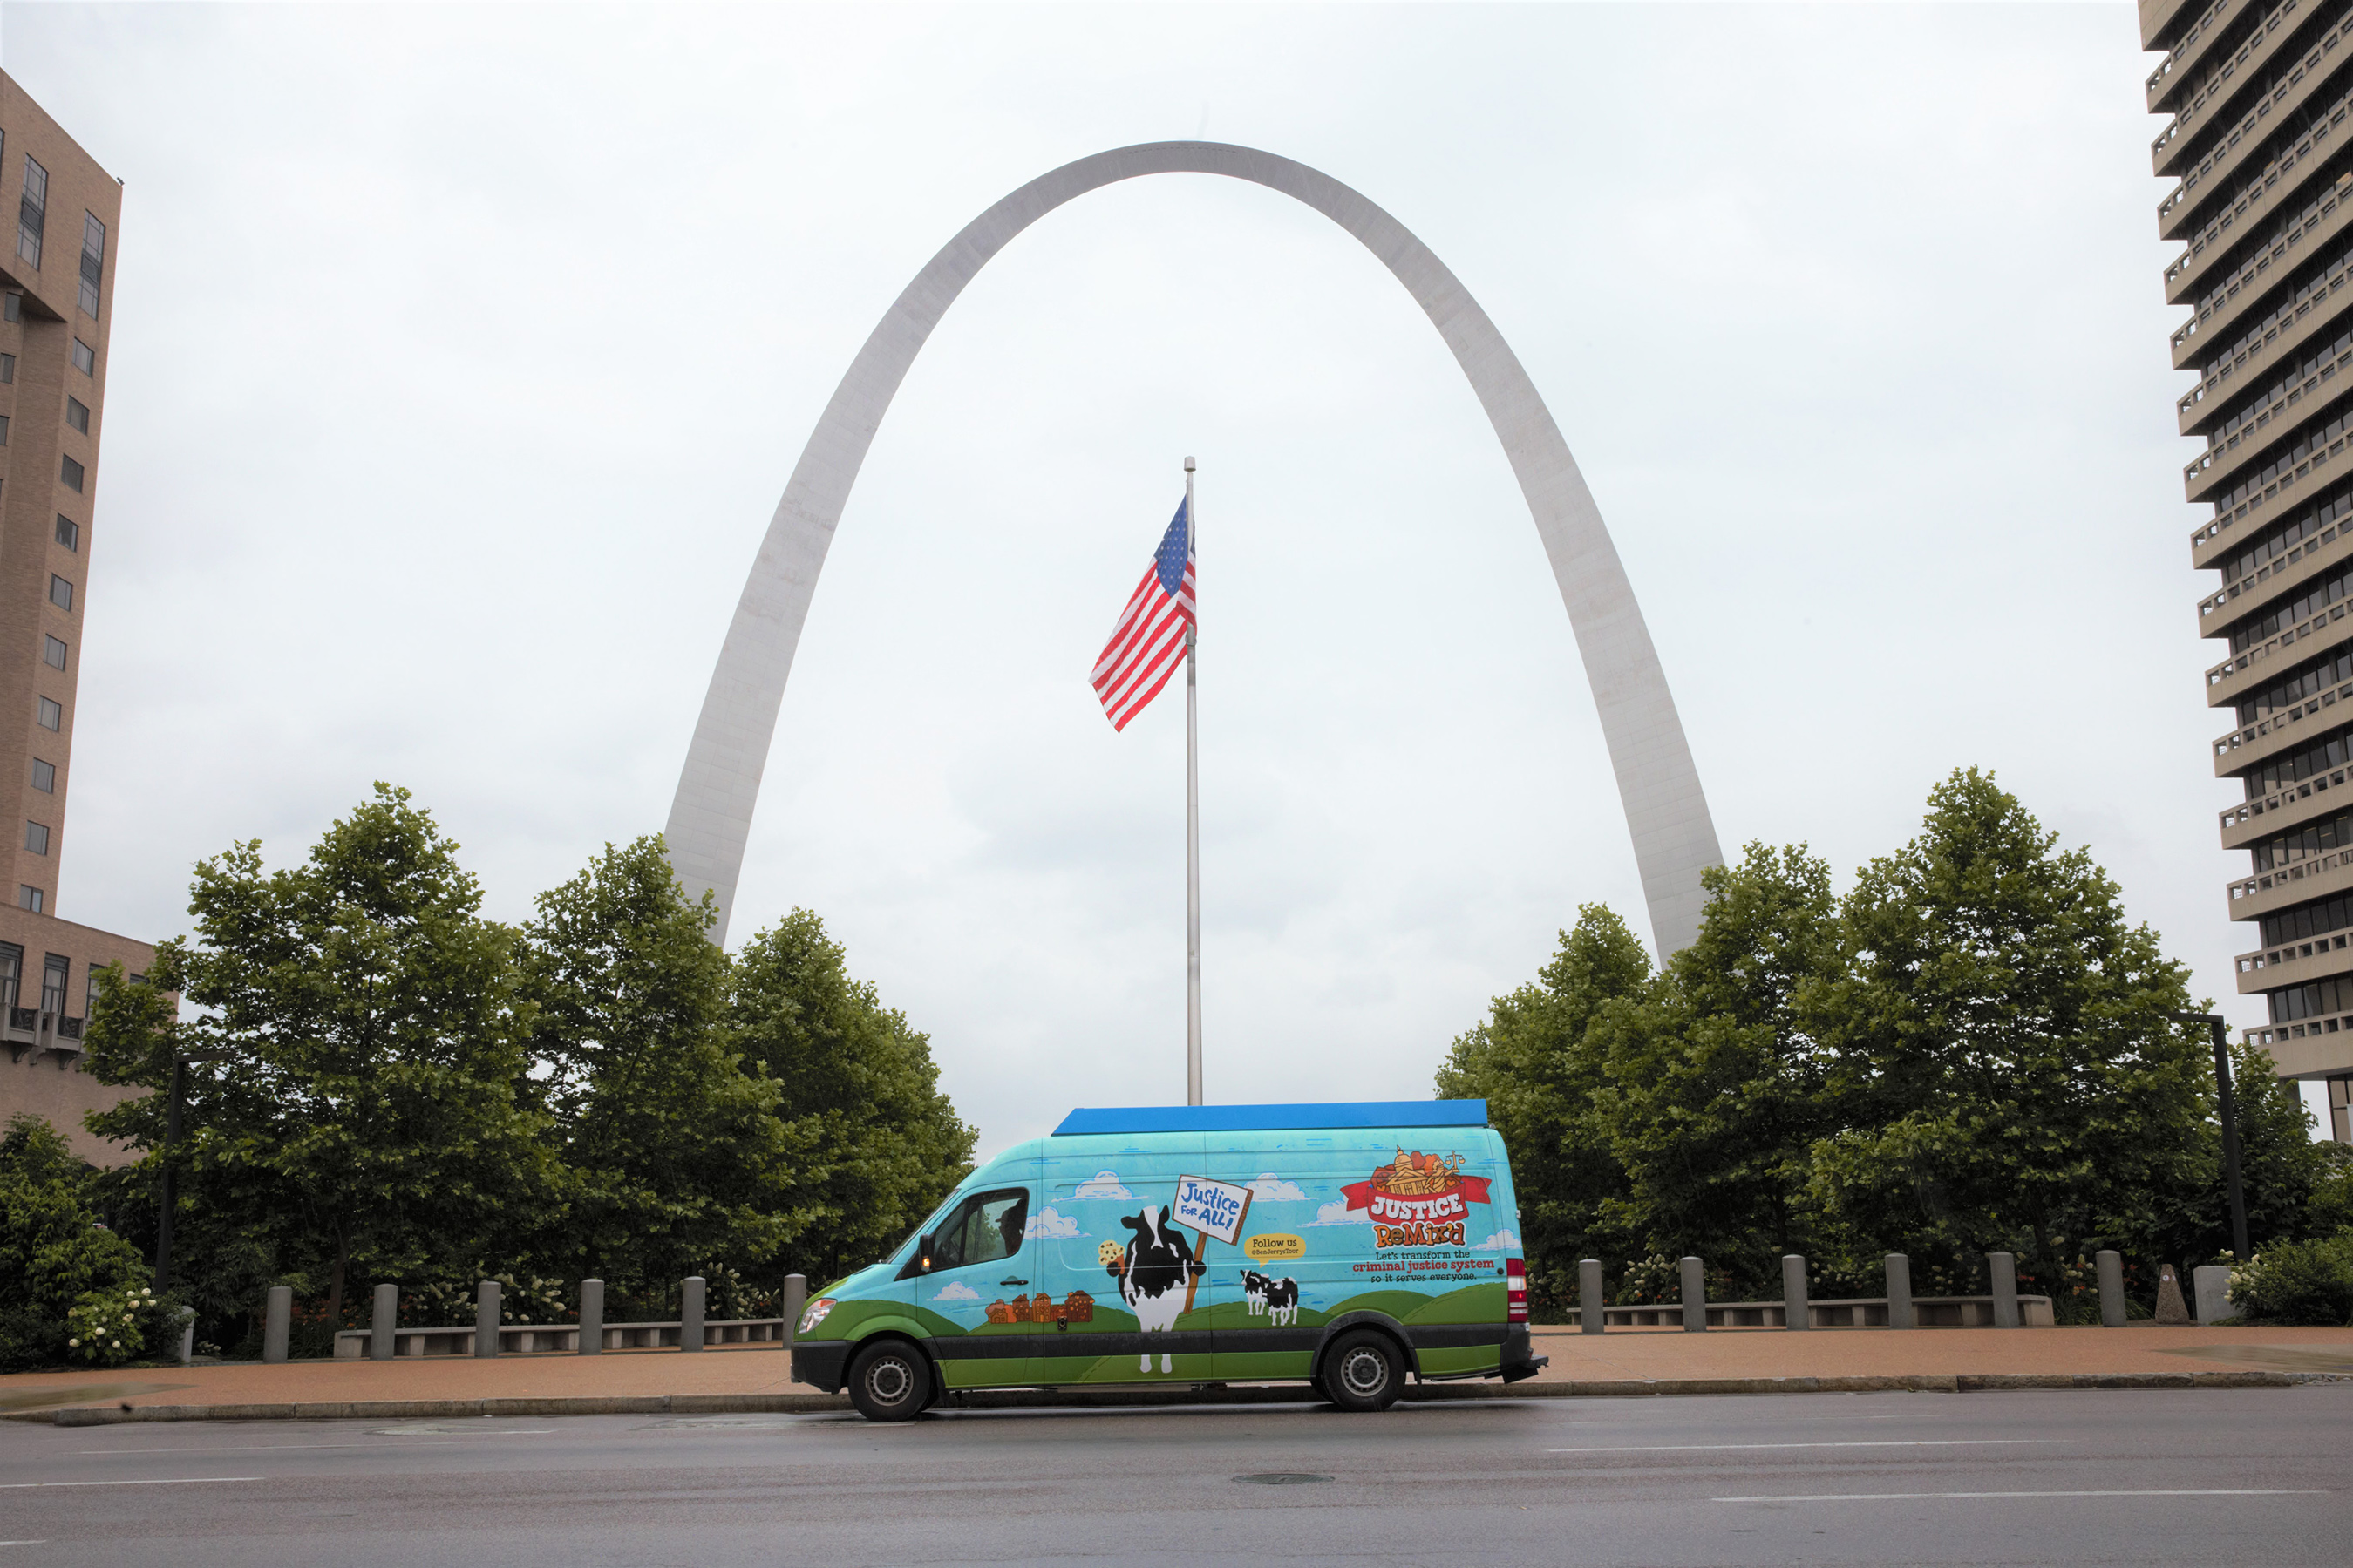 Ben & Jerry's sent its Scoop Truck to St. Louis to encourage people to contact their city representatives about the need to close The Workhouse jail.